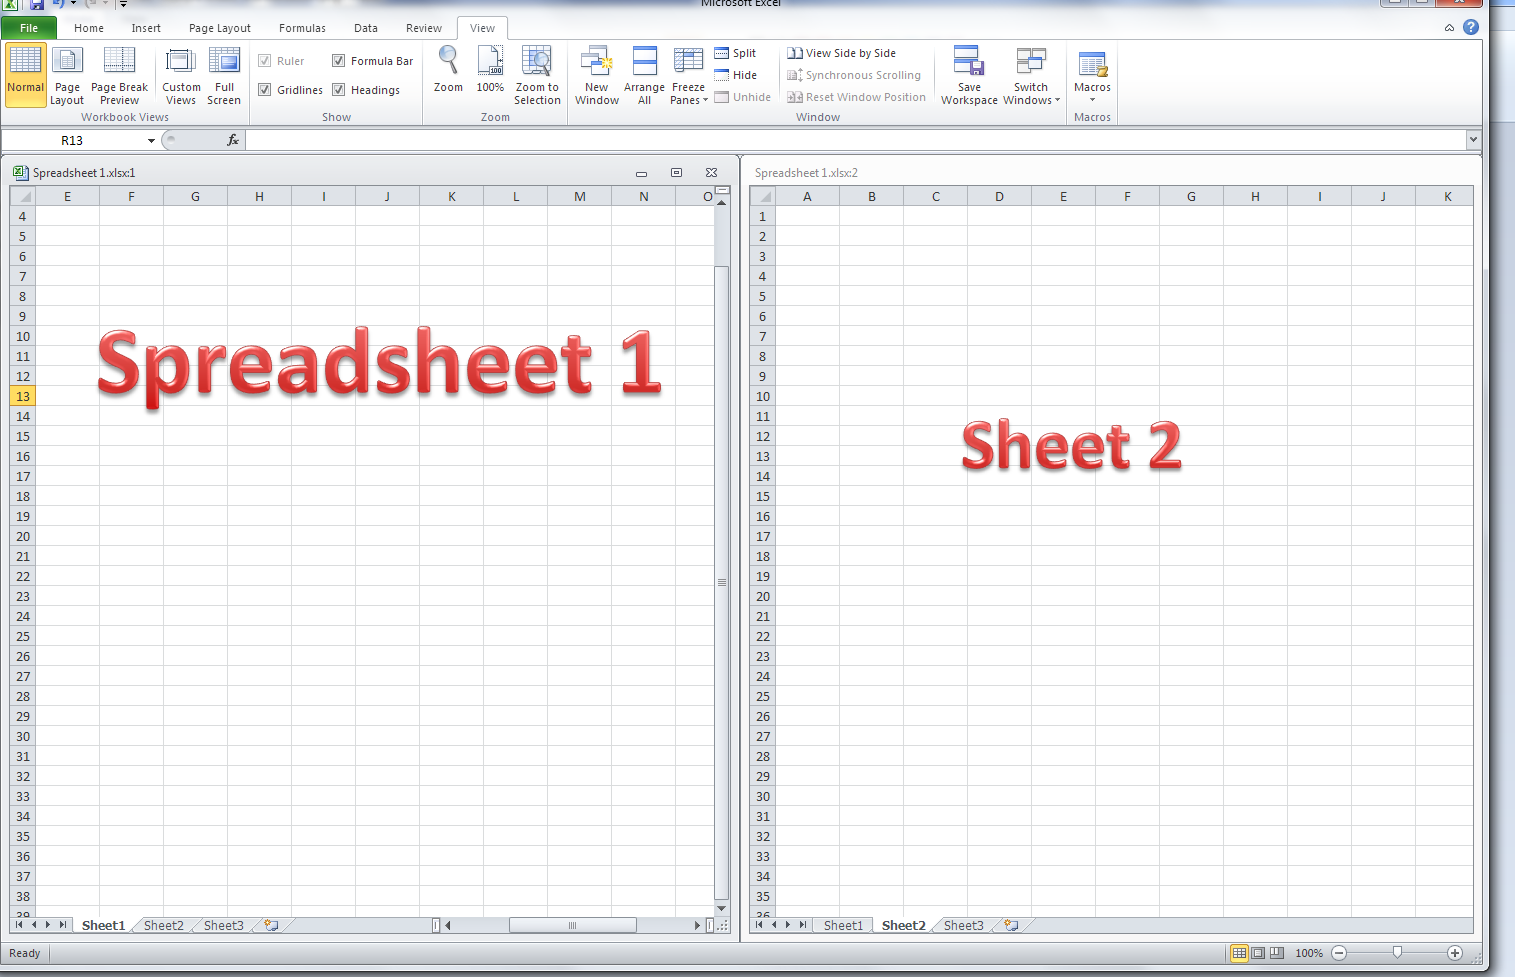 worksheet Workbook Vs Worksheet how do i view two sheets of an excel workbook at the same time 17 multiple in a workbook